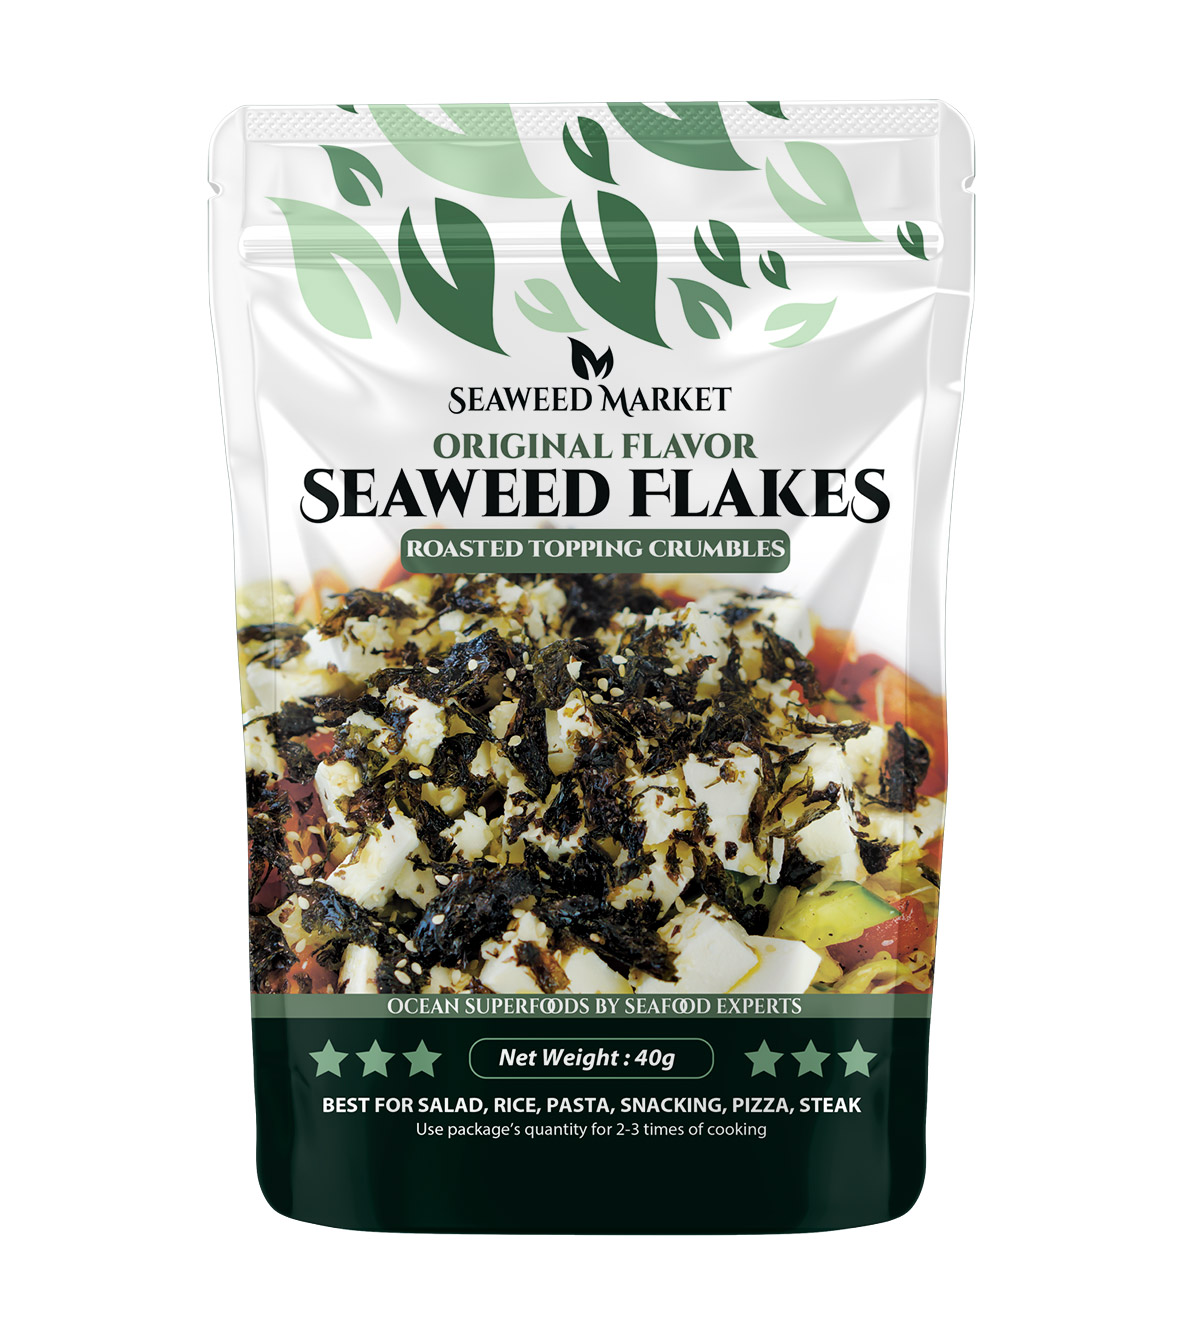 Seaweed Flakes or topping crumbles for cooking salads, rice, bbq, pasta and other dishes picture